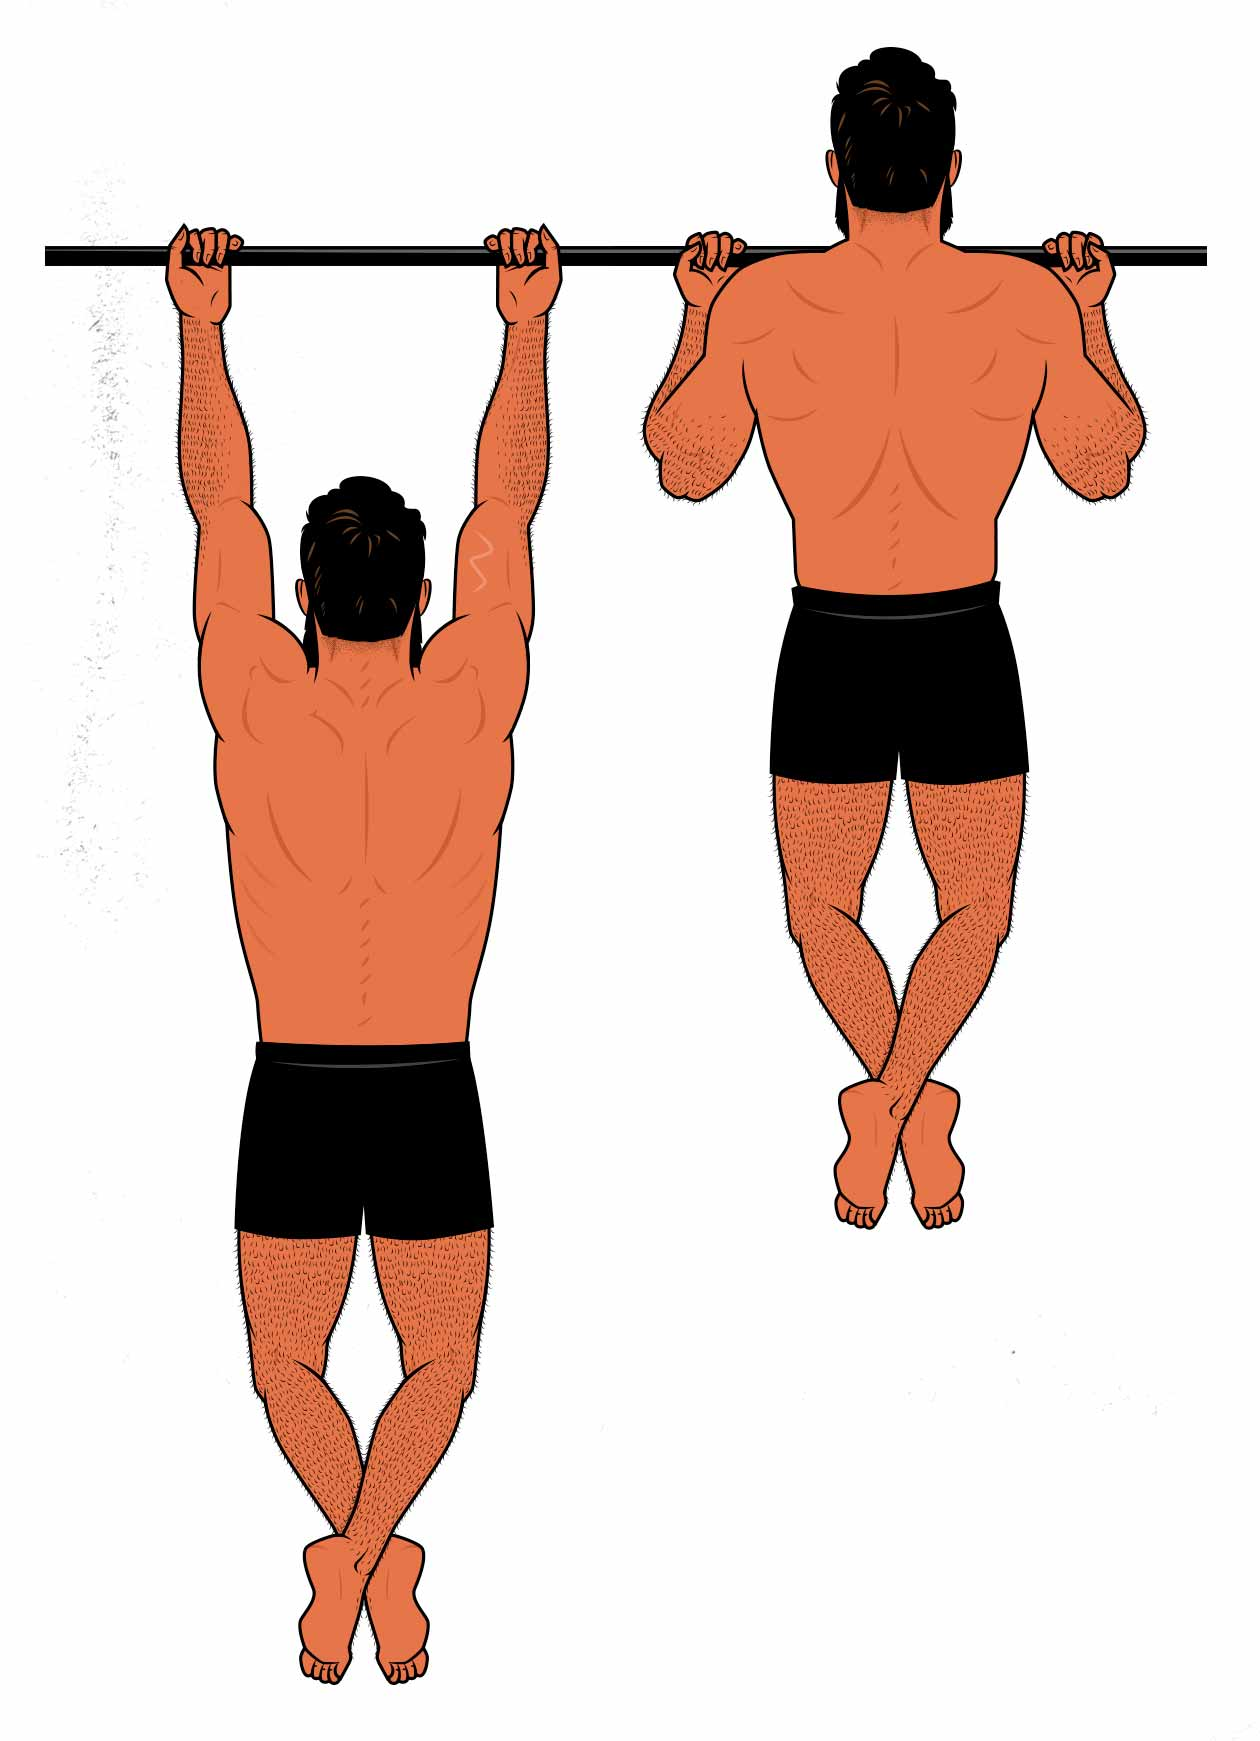 Illustration of a man doing chin-ups.